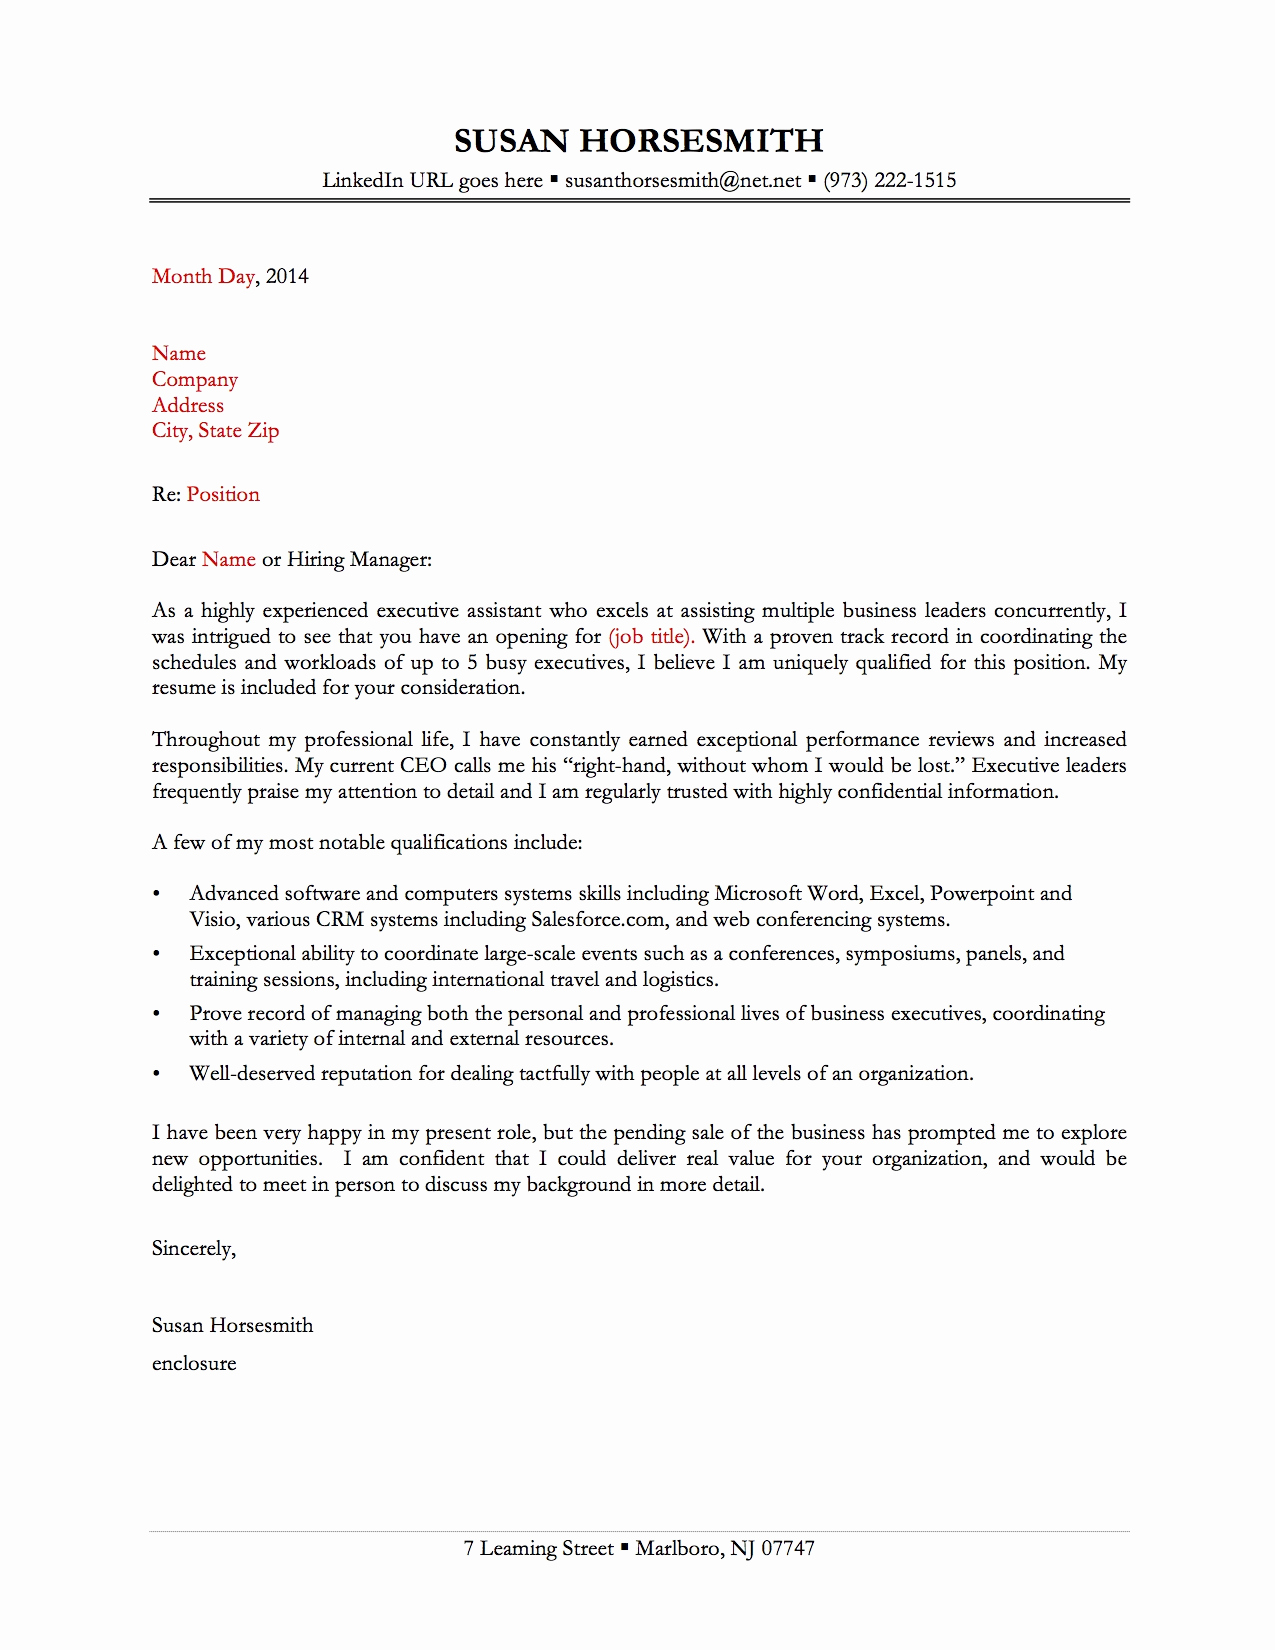 Administrative assistant Cover Letter Examples Elegant Sample Cover Letters for Administrative assistant